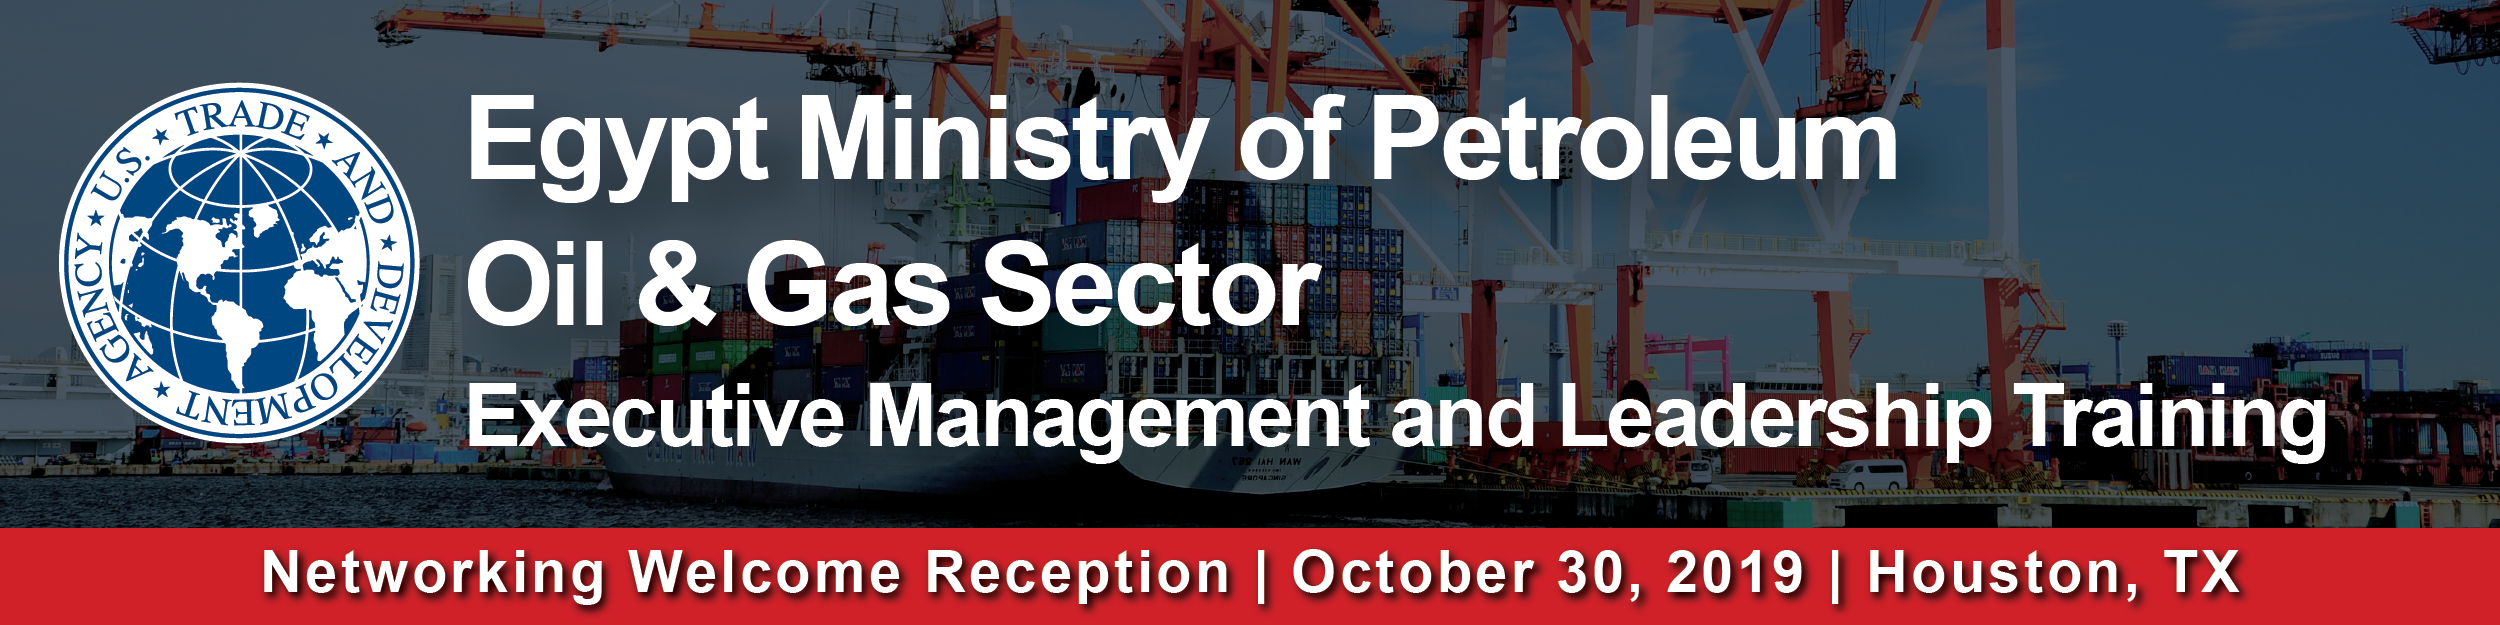 Networking Welcome Reception Header Oct. 30 - Egypt MoP Oil & Gas Sector Executive Management and Le